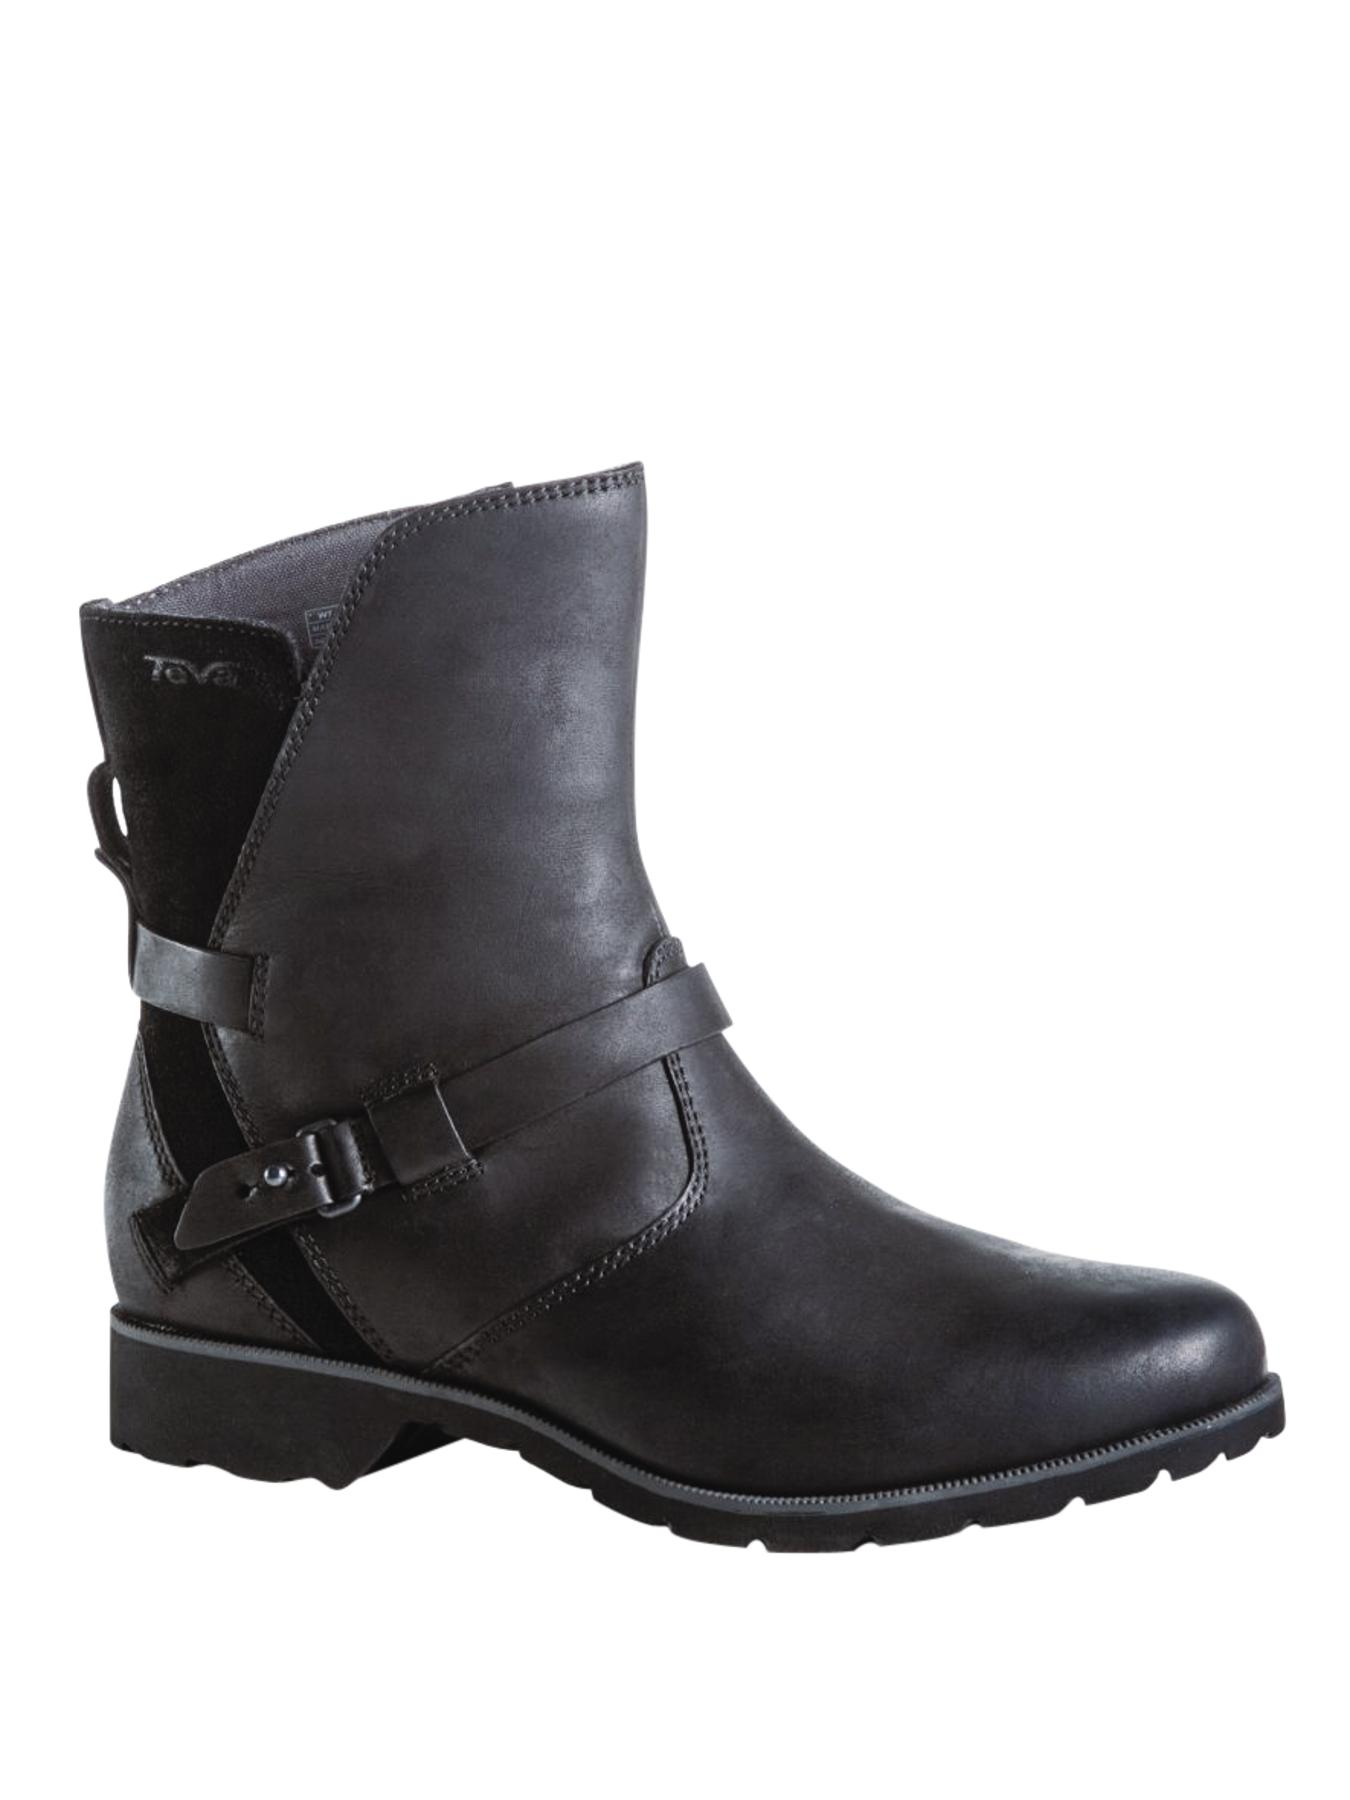 Ladies De La Vina Low Winter Boot, Black